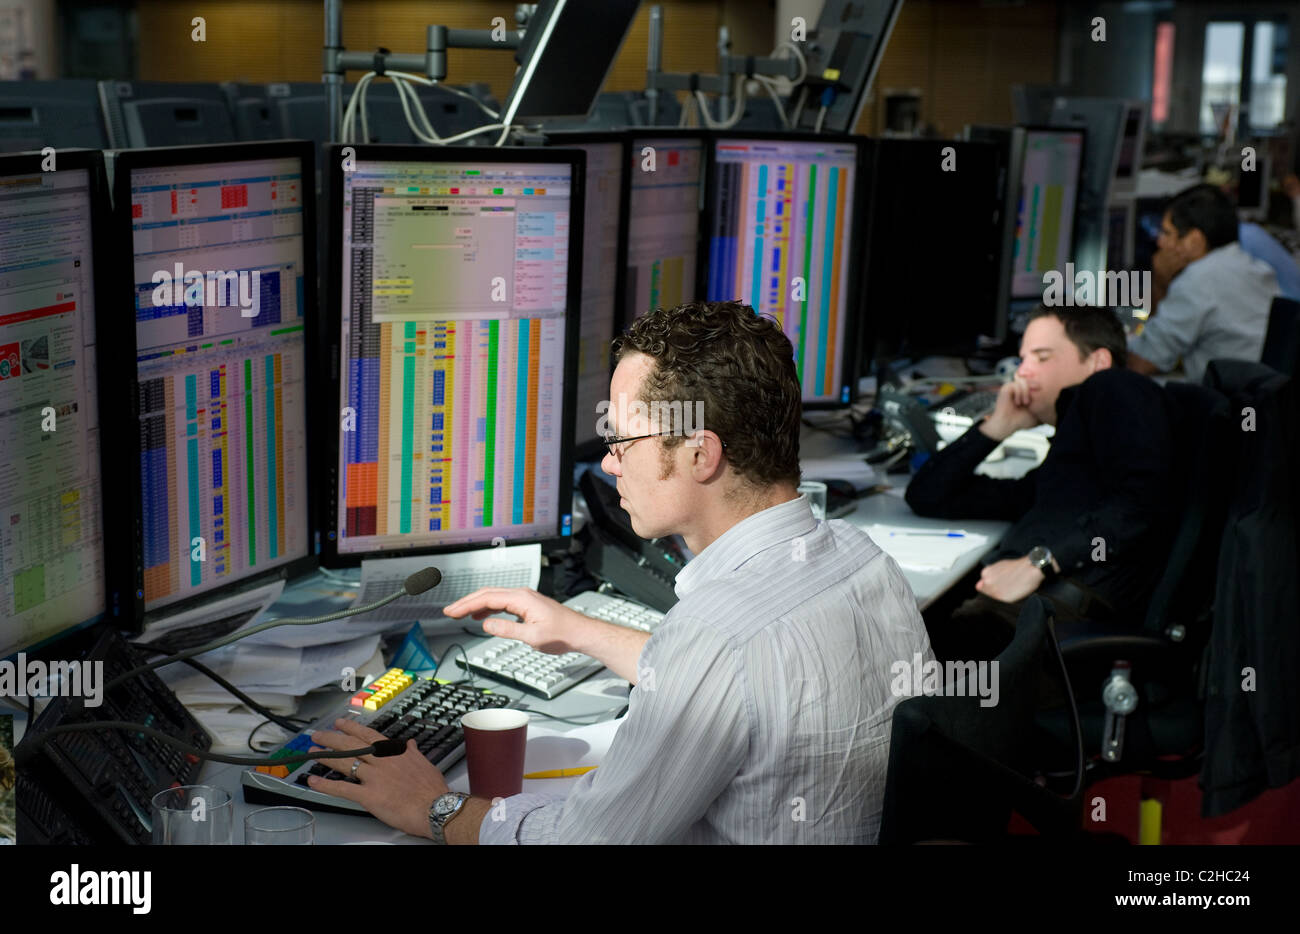 Dealers in securities at the screens of their computers, Frankfurt am Main, Germany - Stock Image